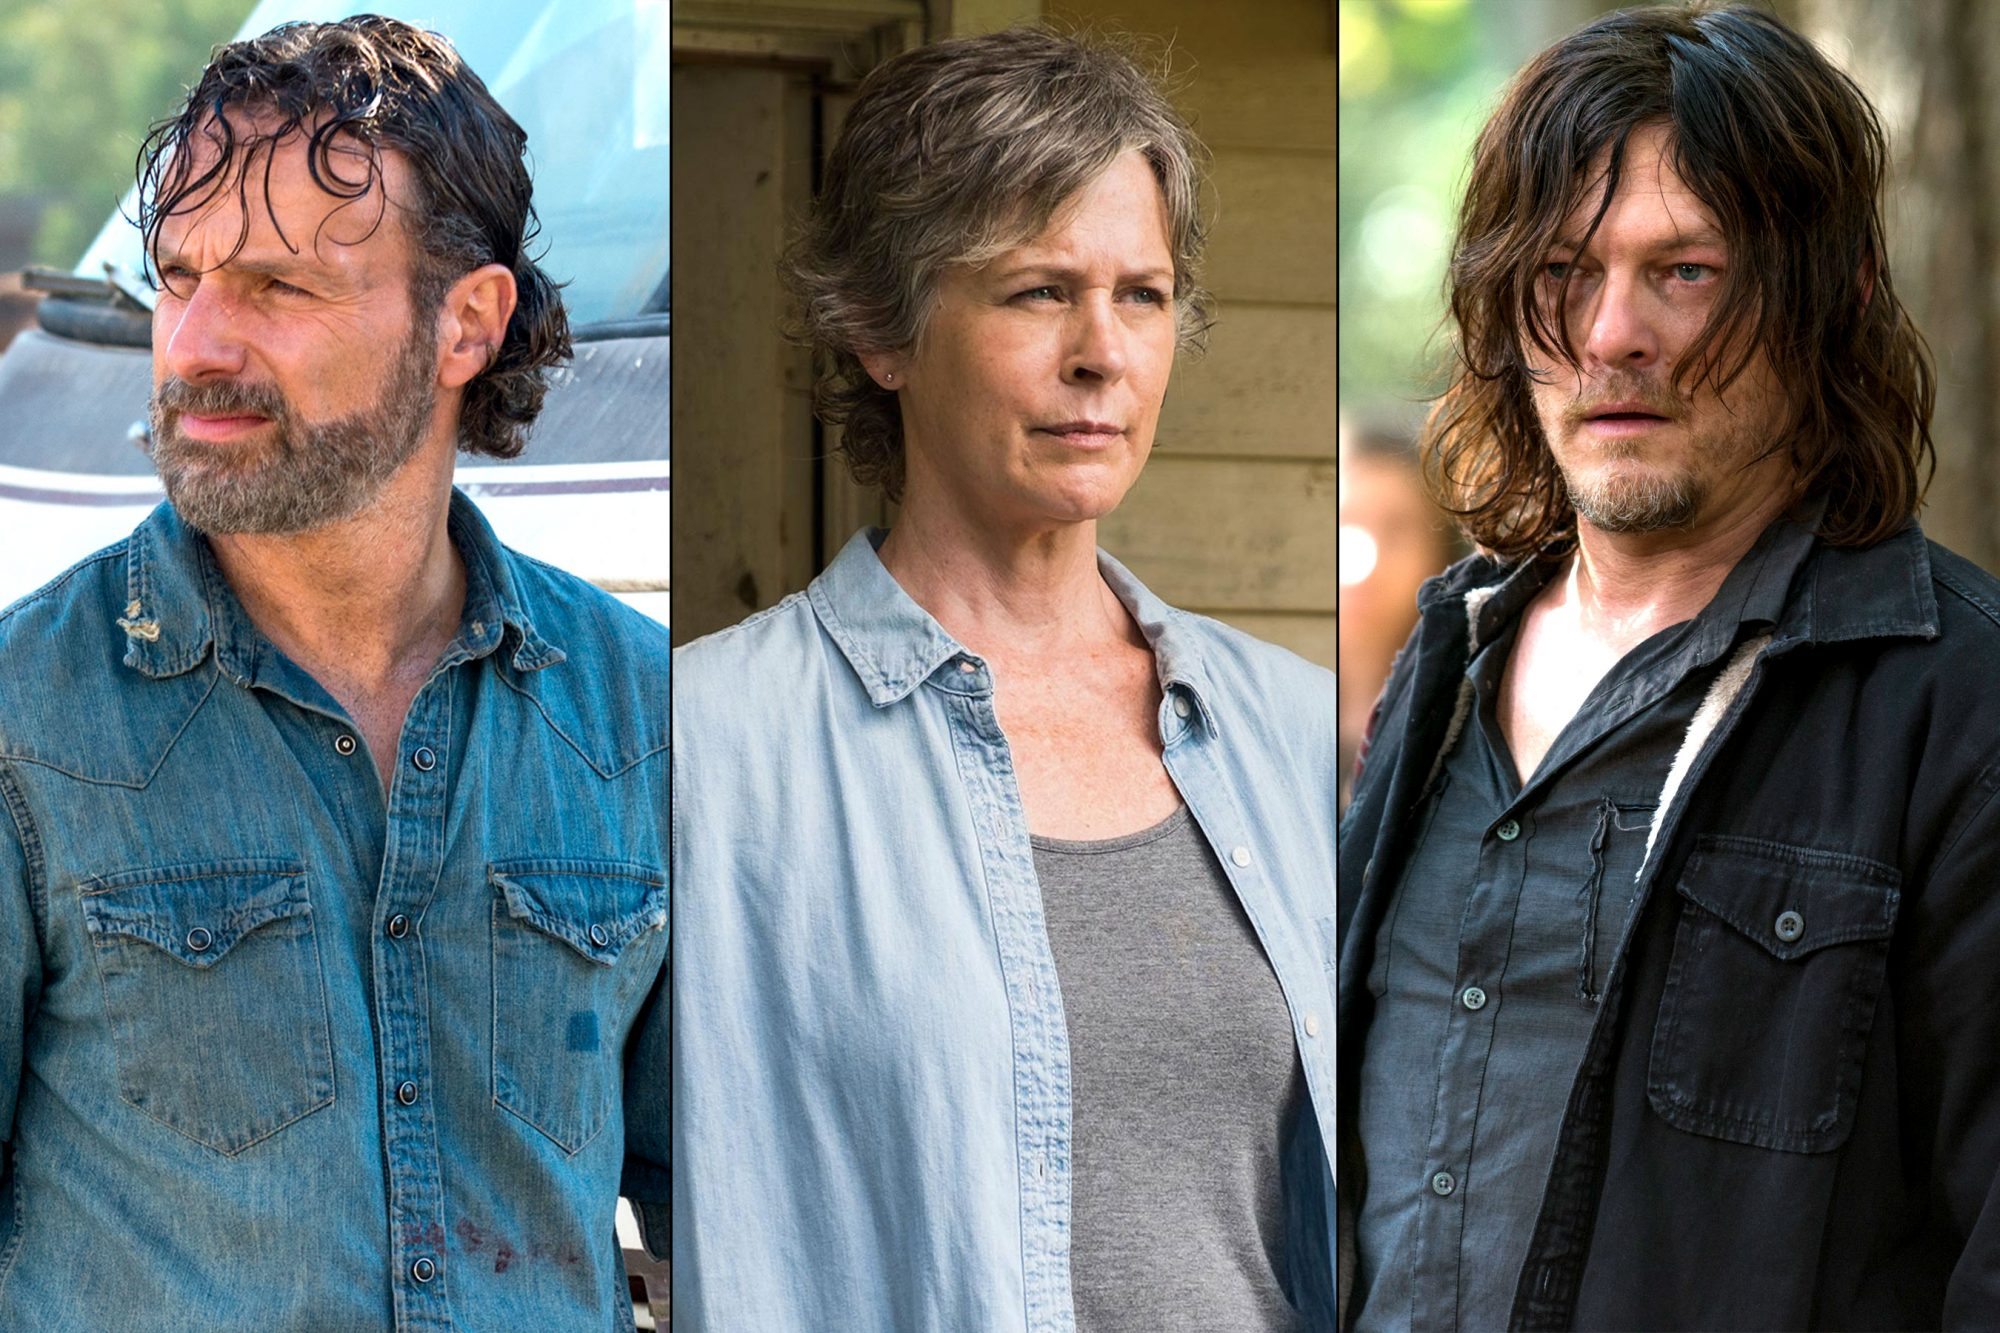 GALLERY: Walking Dead on the 100th episode